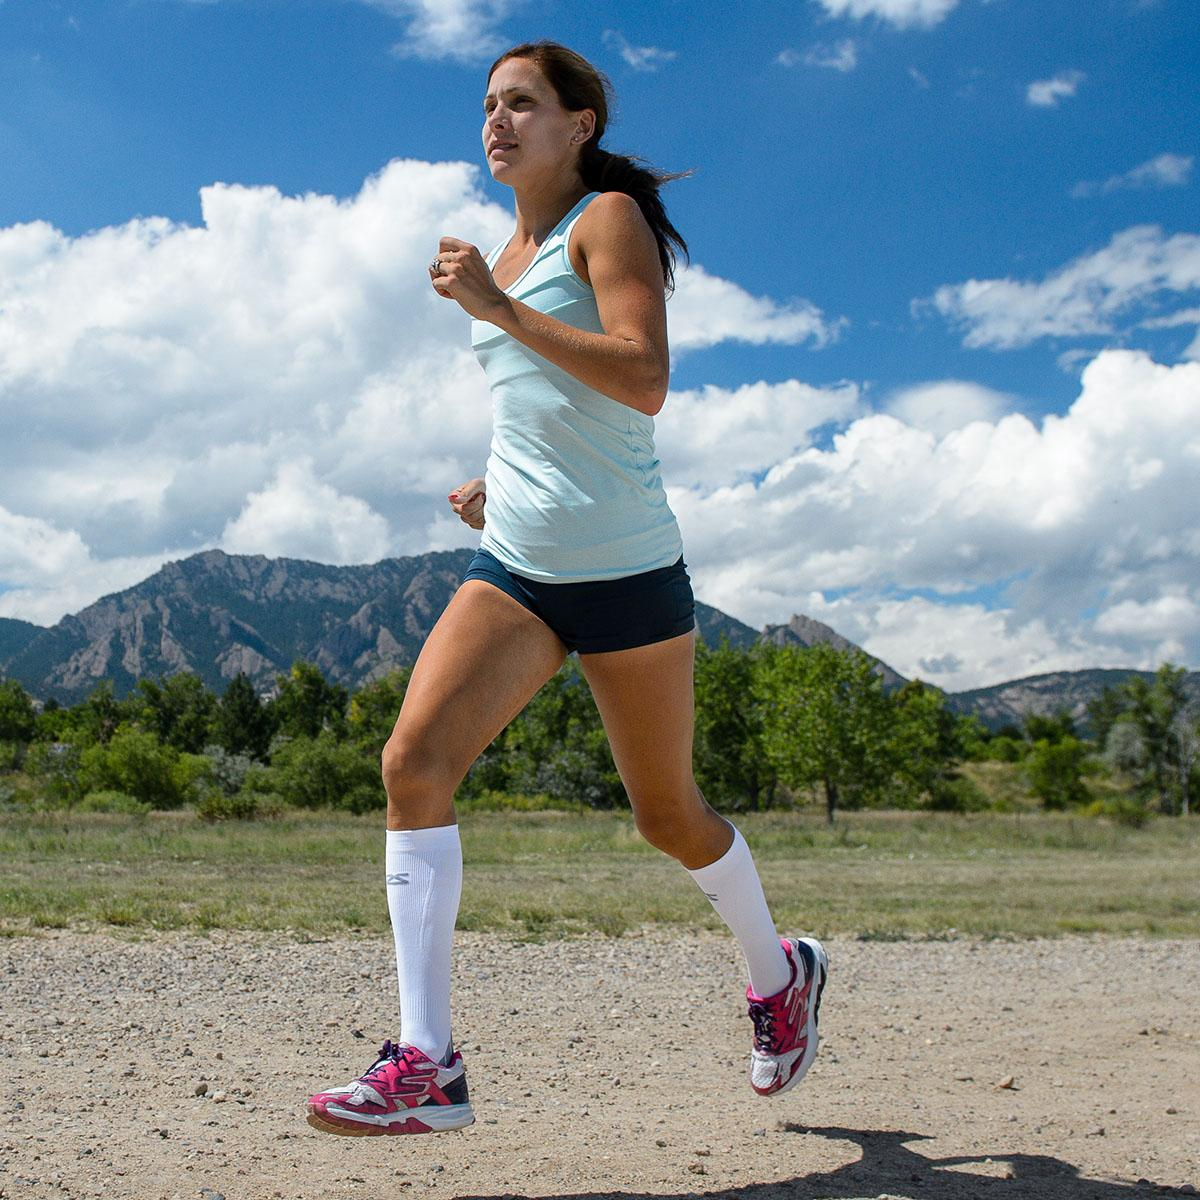 6 Efficient Benefits of Running in Compression Socks or Sleeves